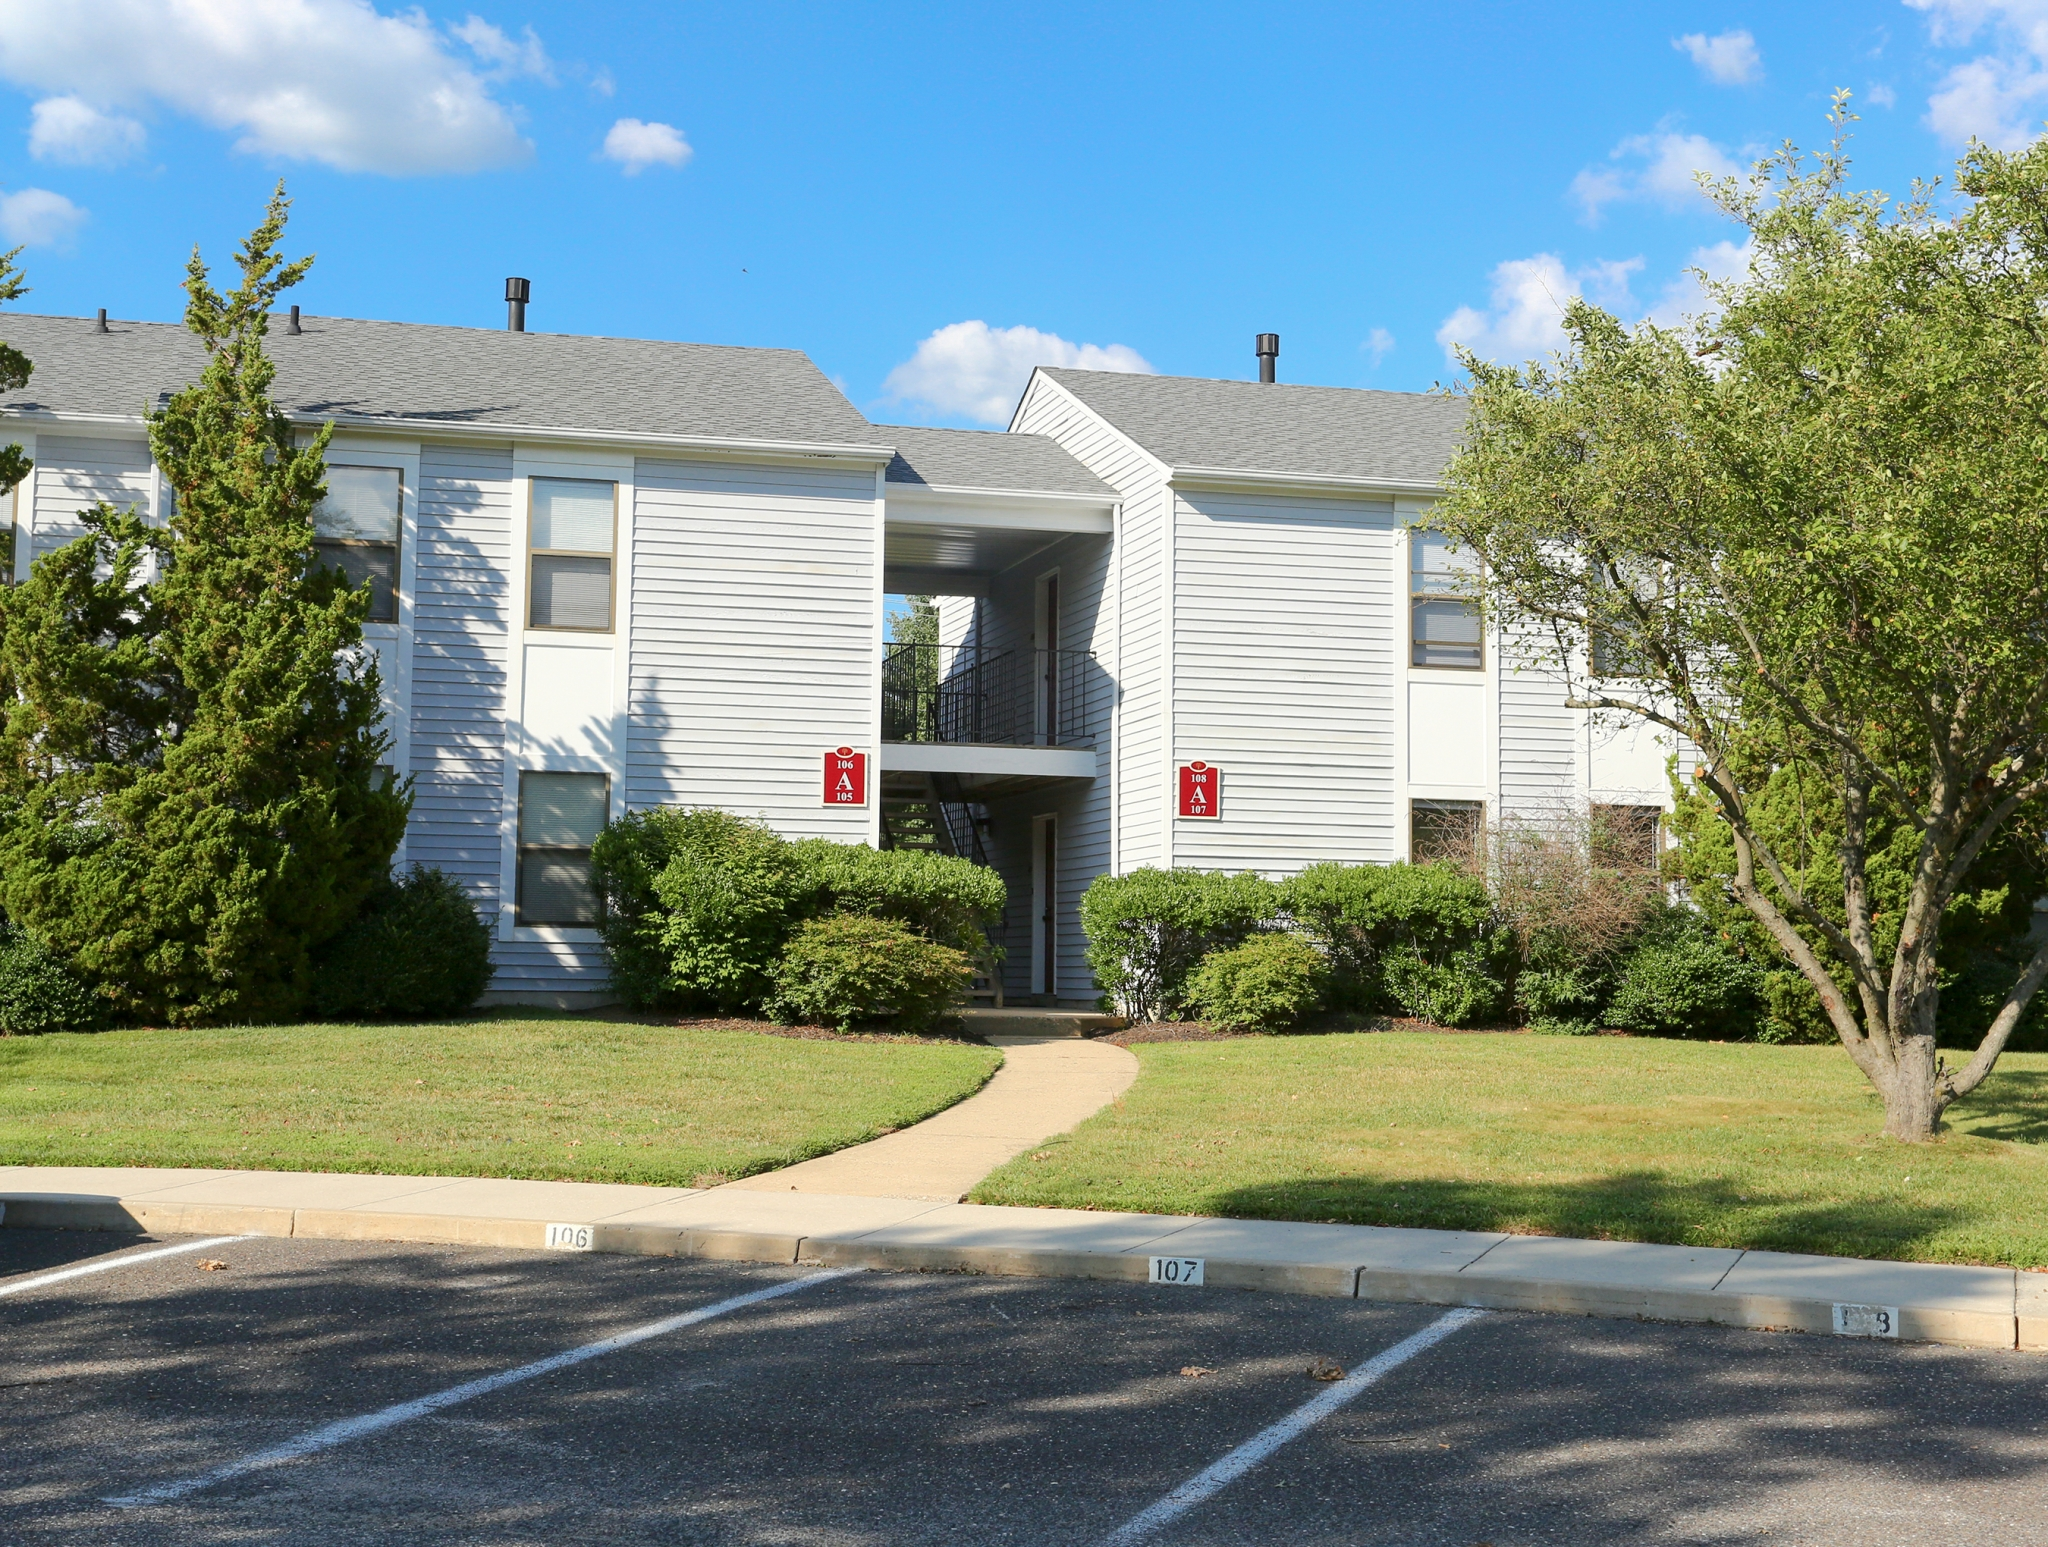 Willow Ridge Village Apartments image 1